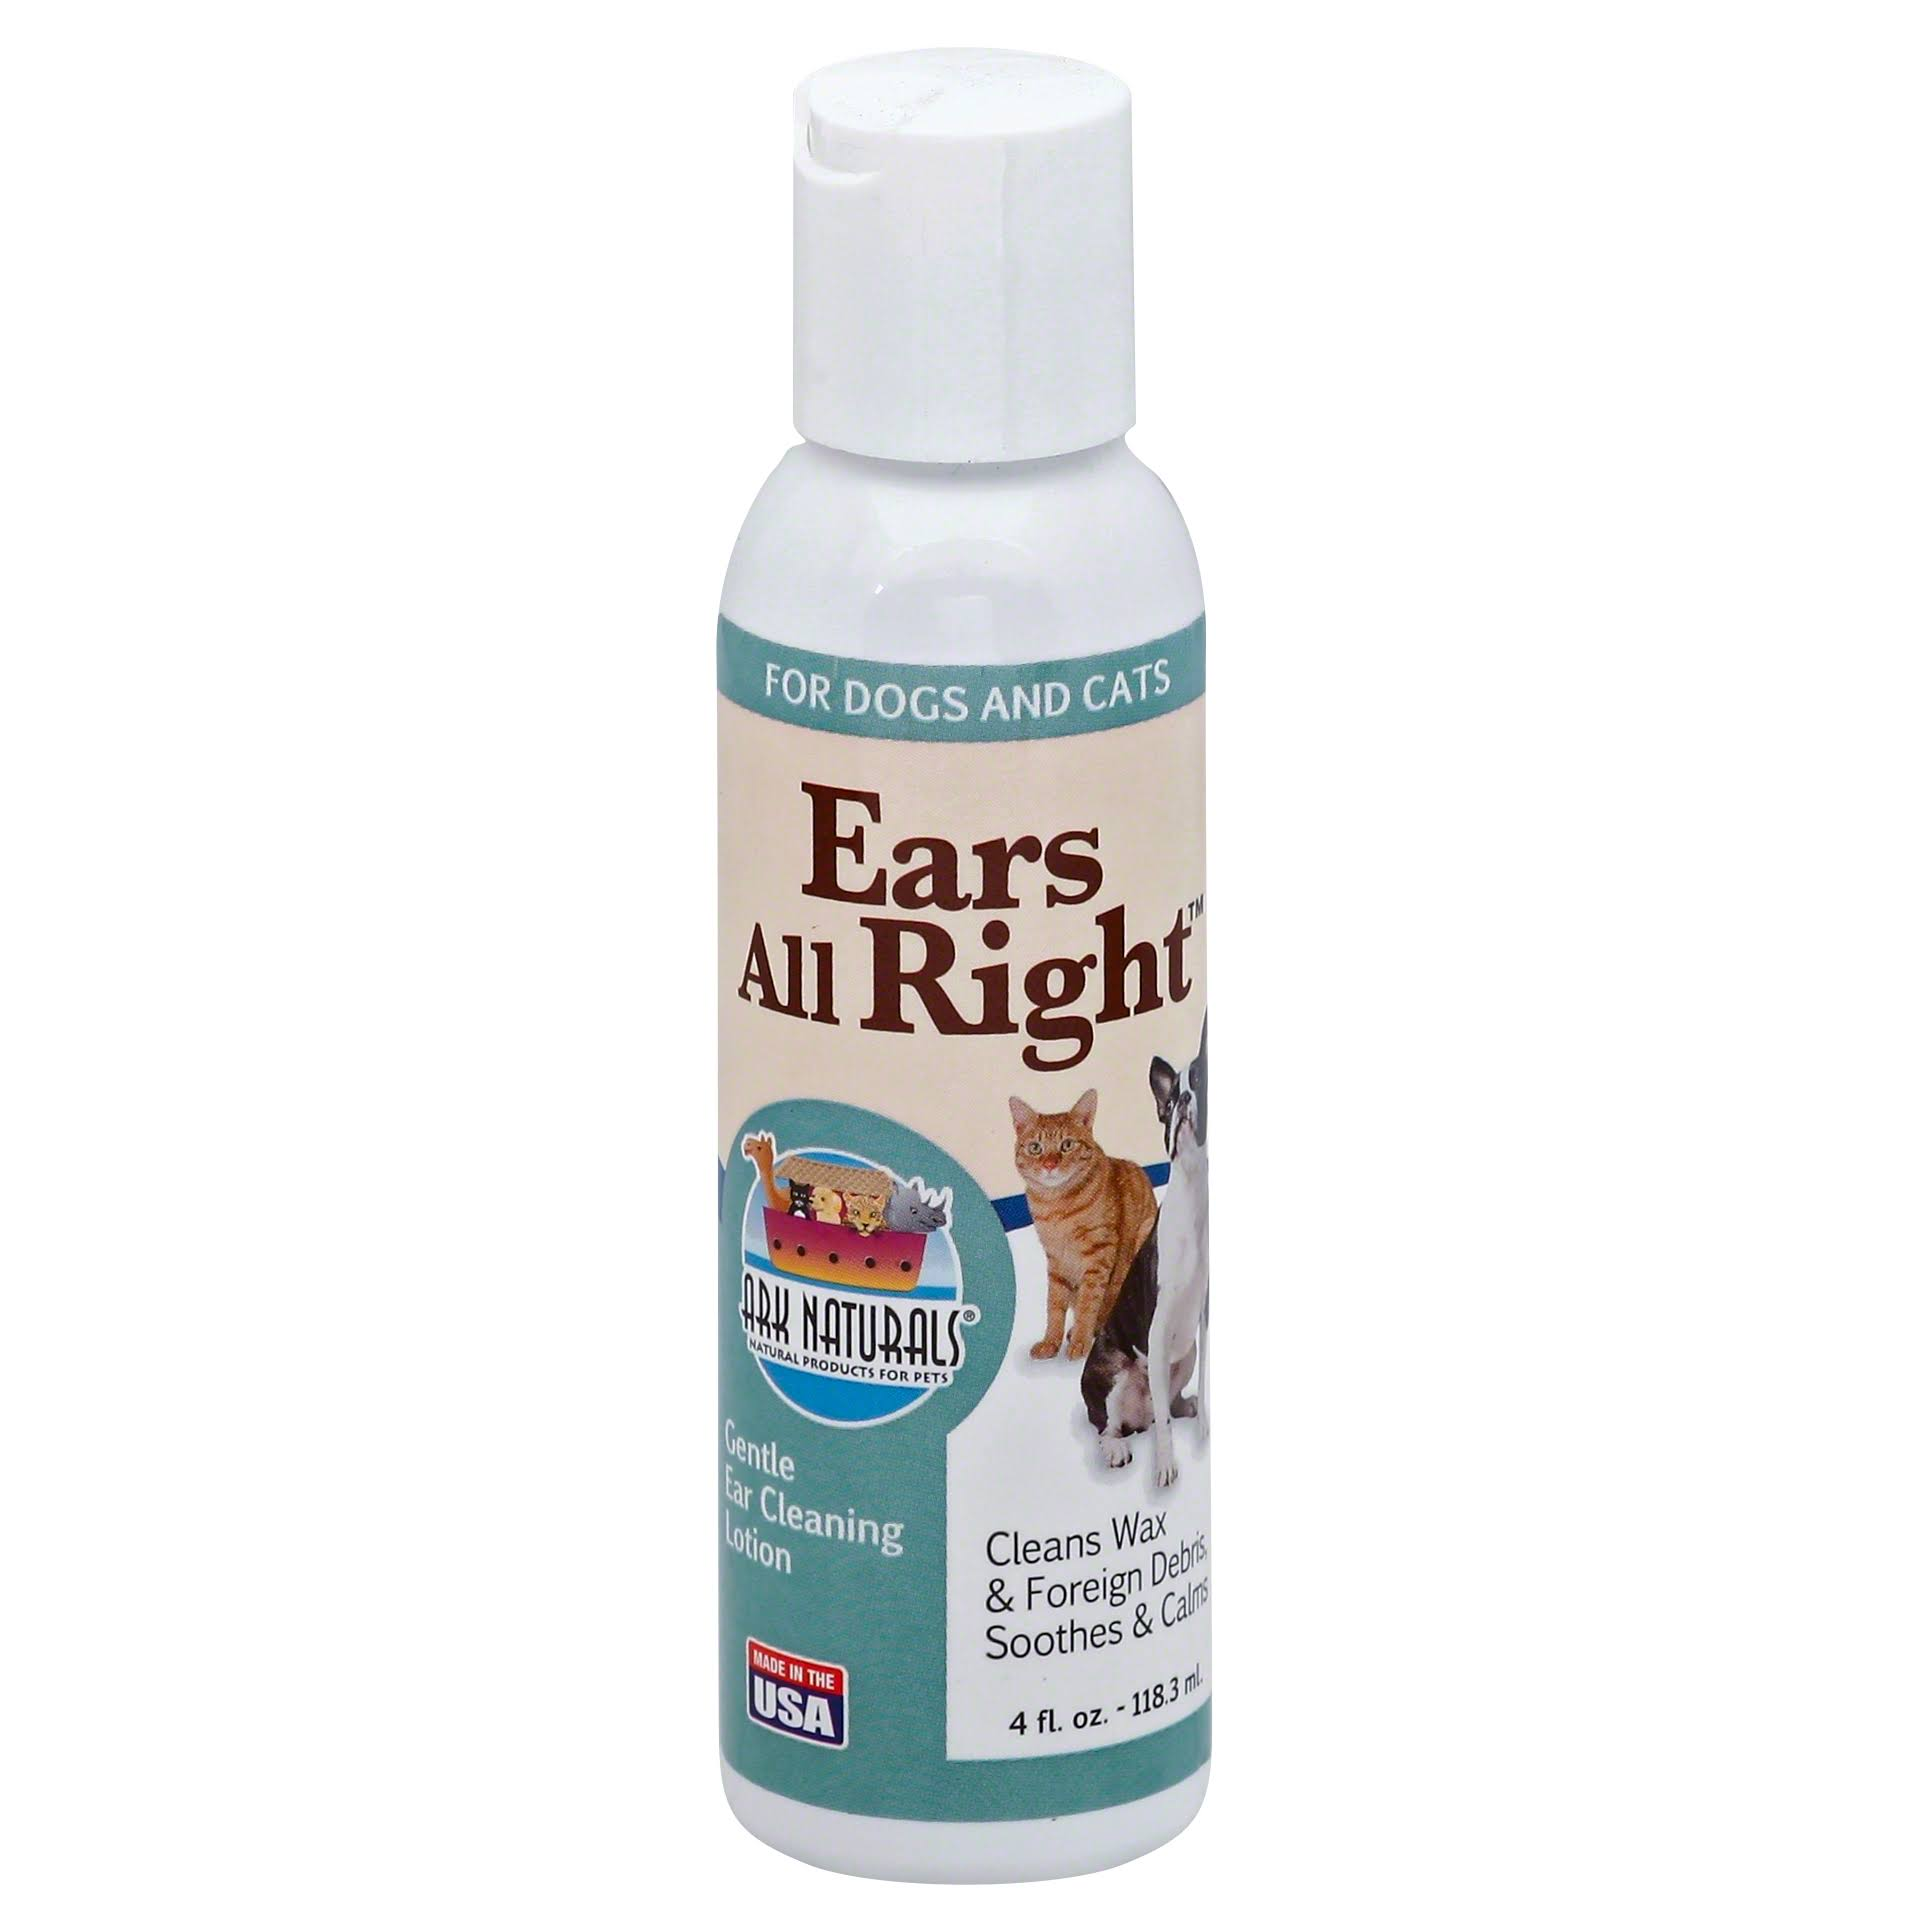 Ark Naturals Ears All Right Cleaning Lotion